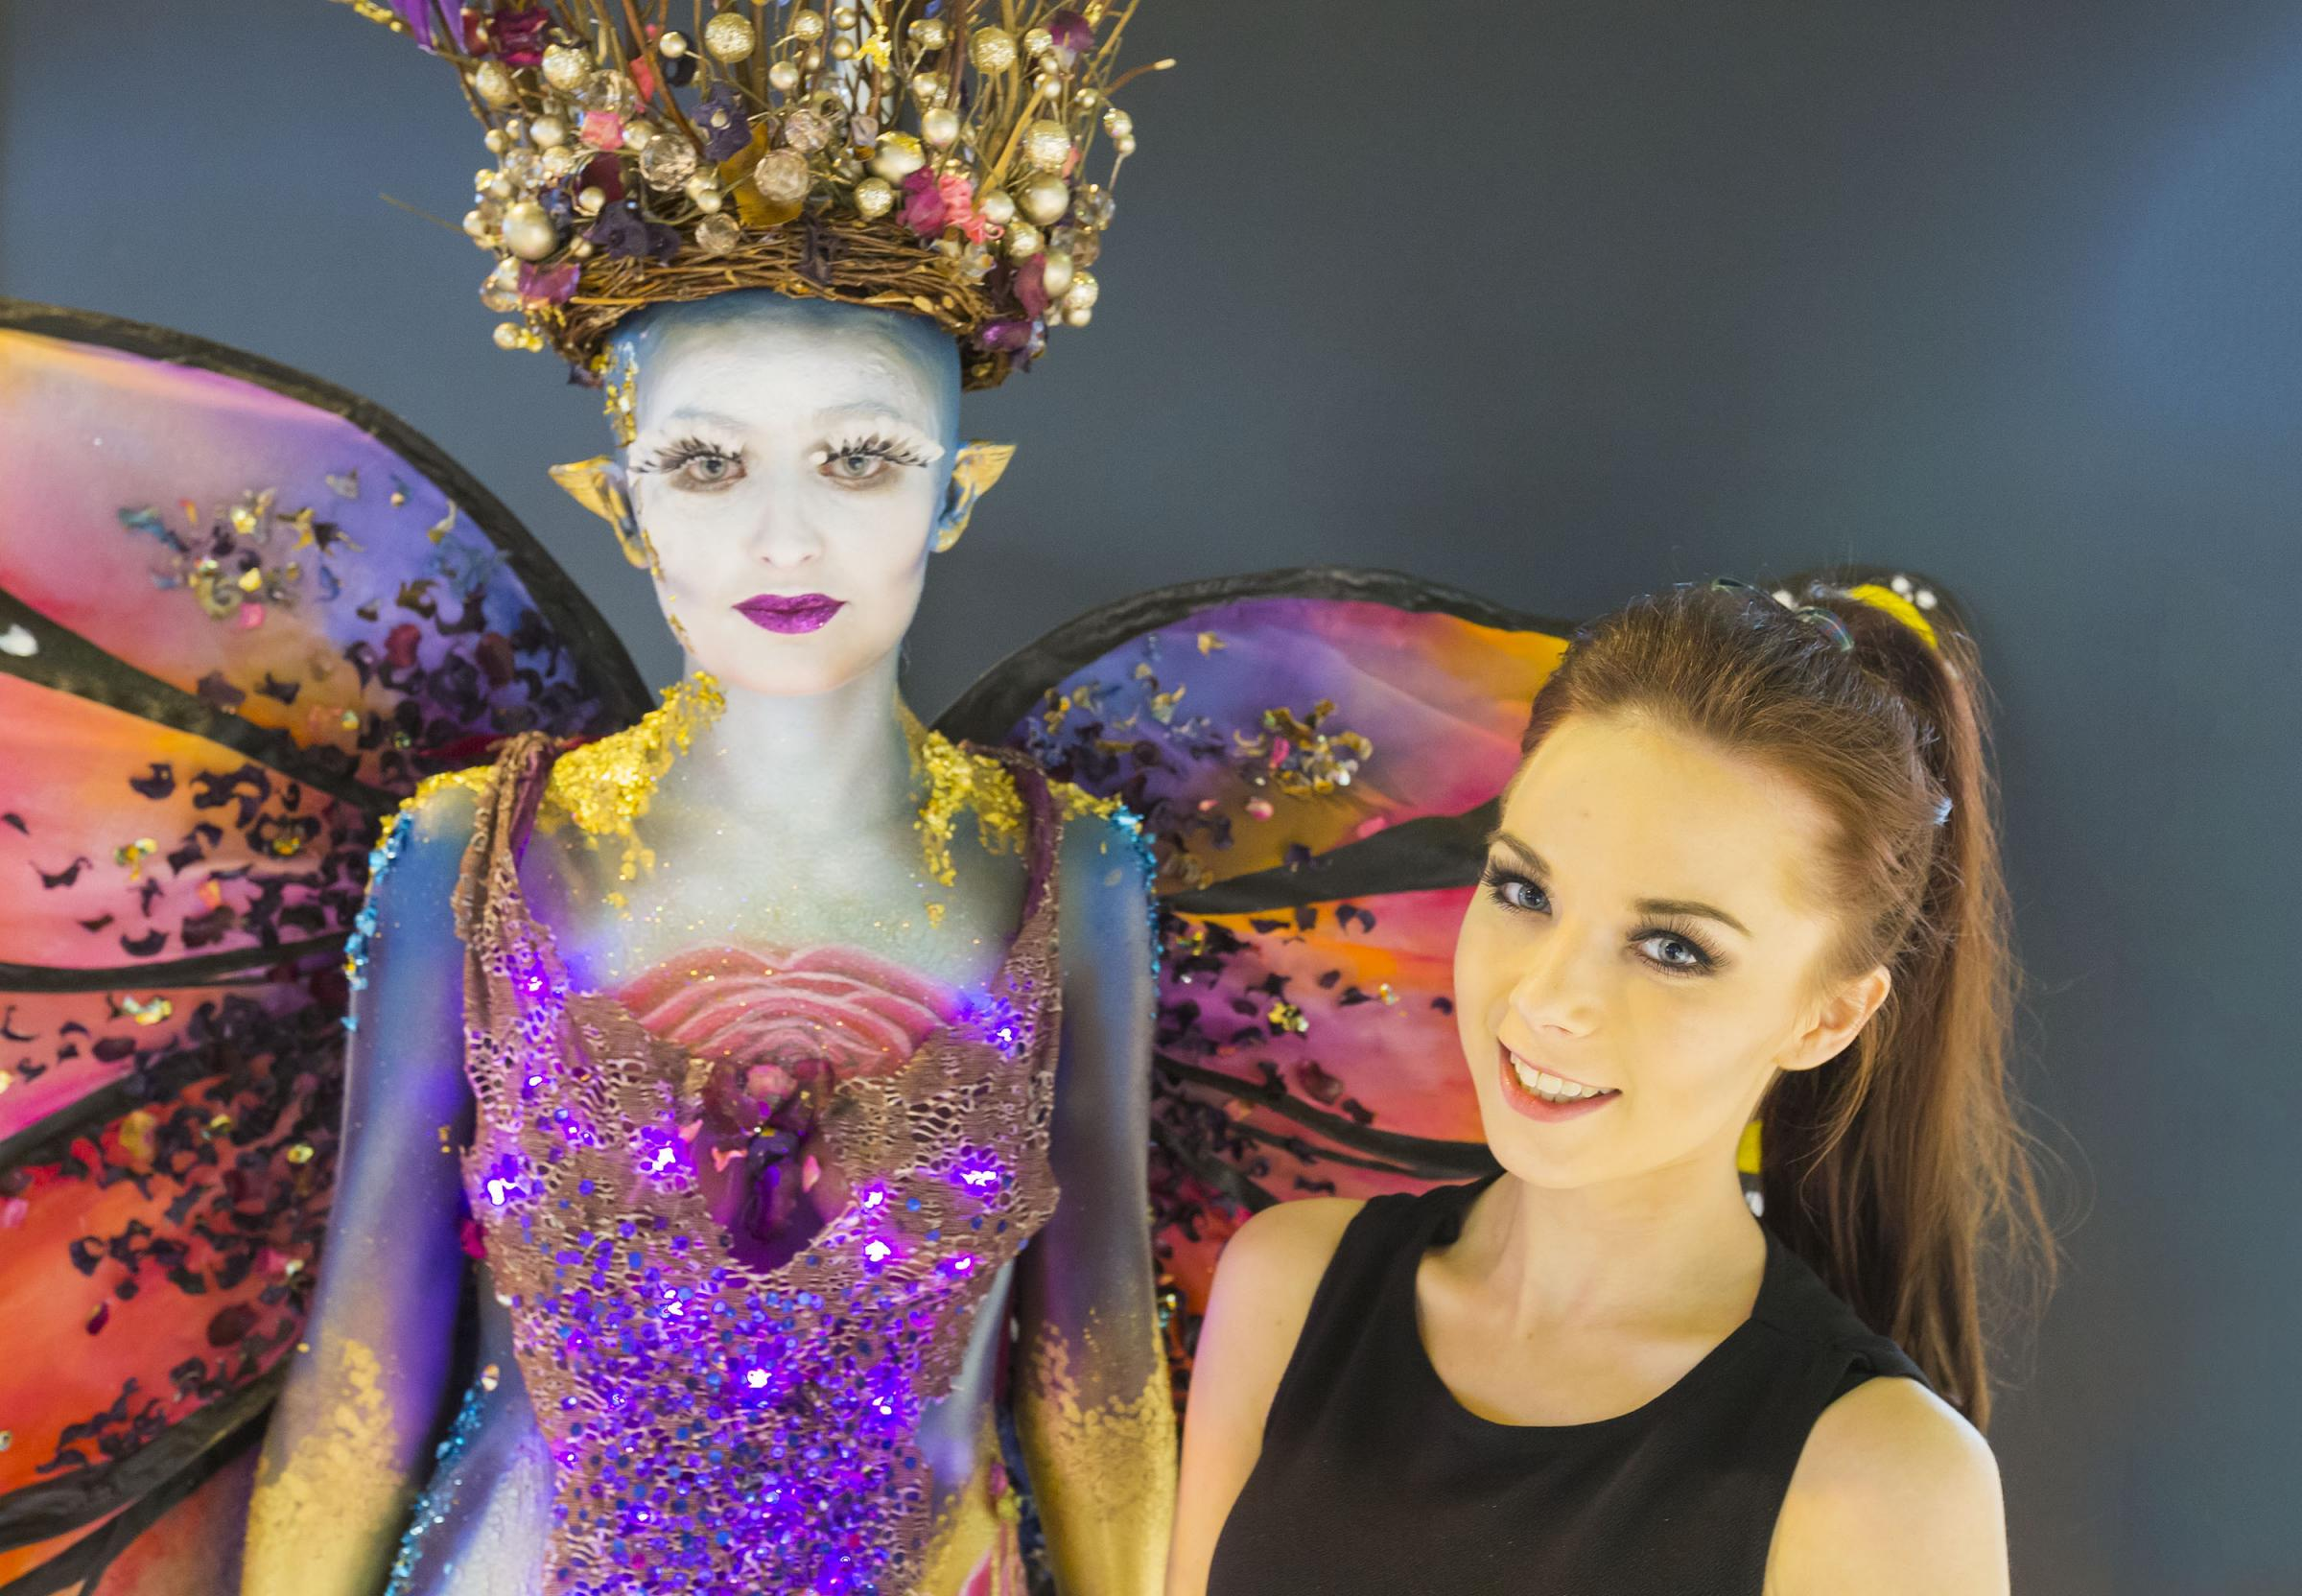 SGS make-up artistry student Katie Hadley won gold in the finals of a national competition for her incredible butterfl